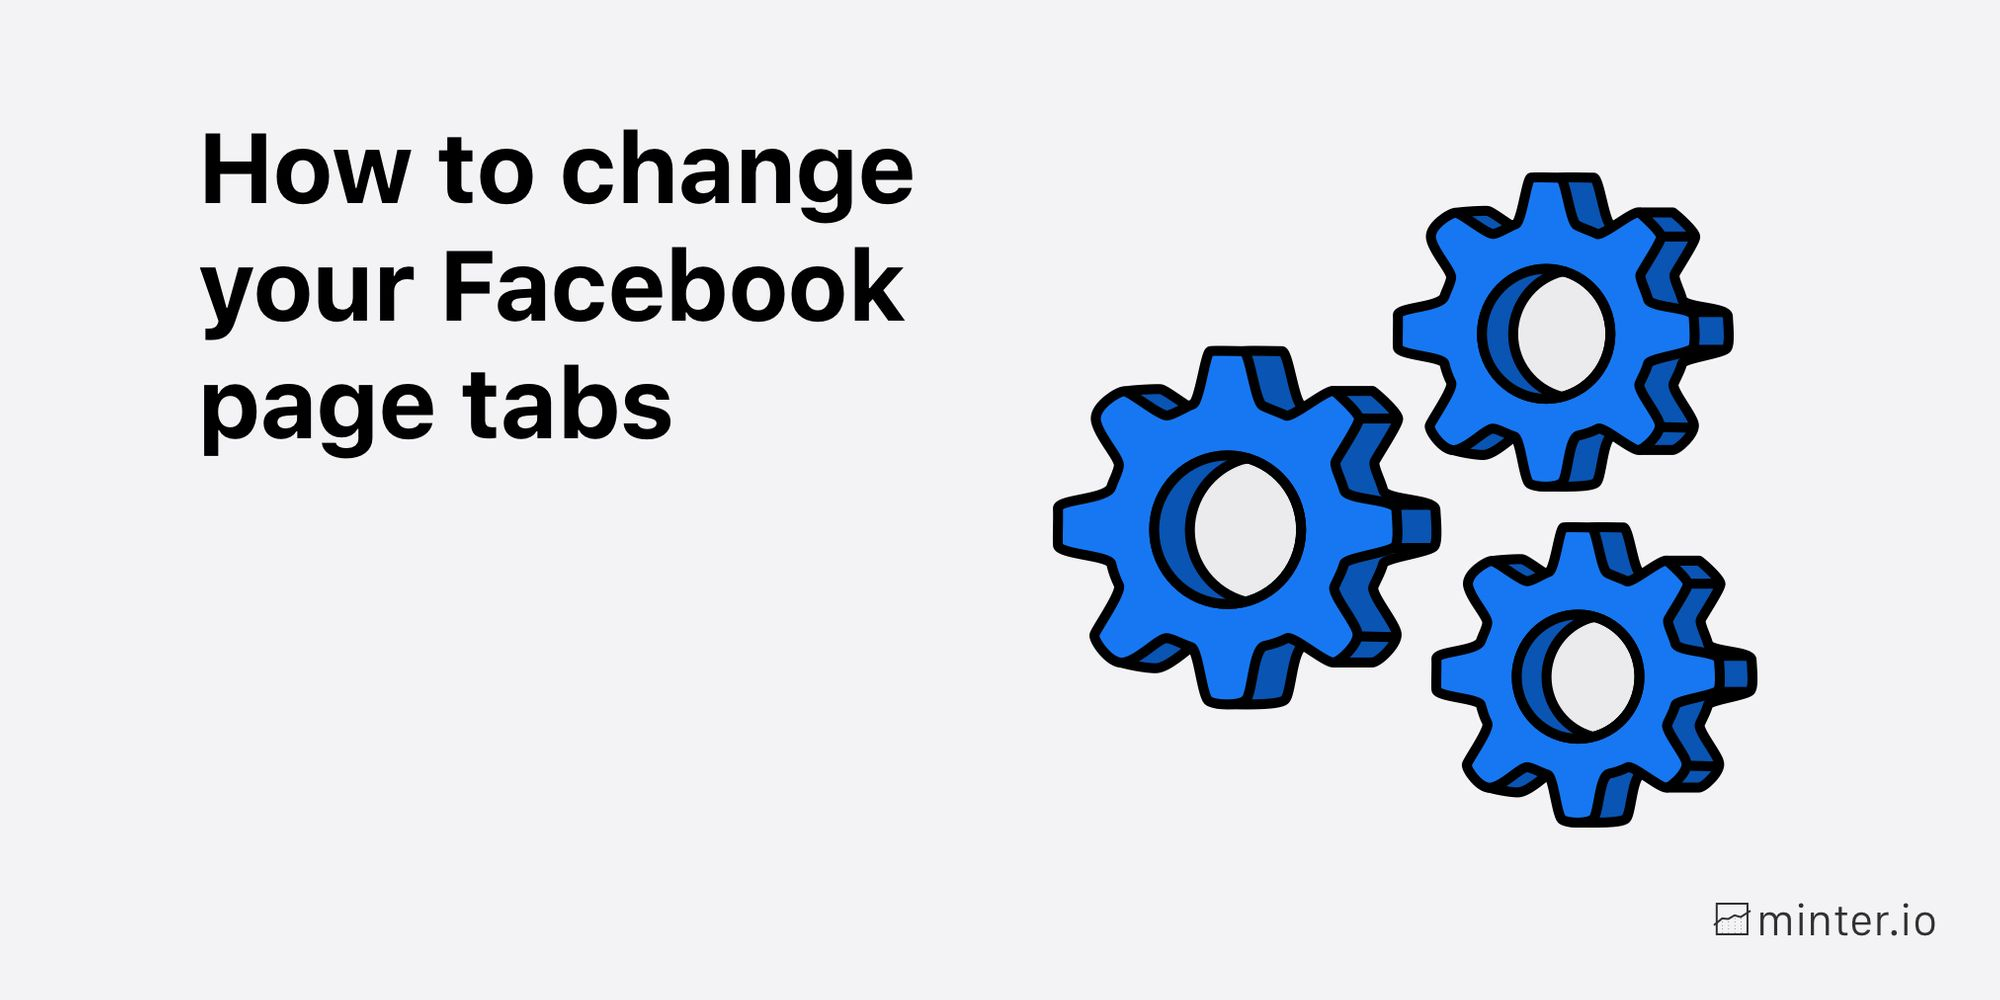 How to change your Facebook page tabs